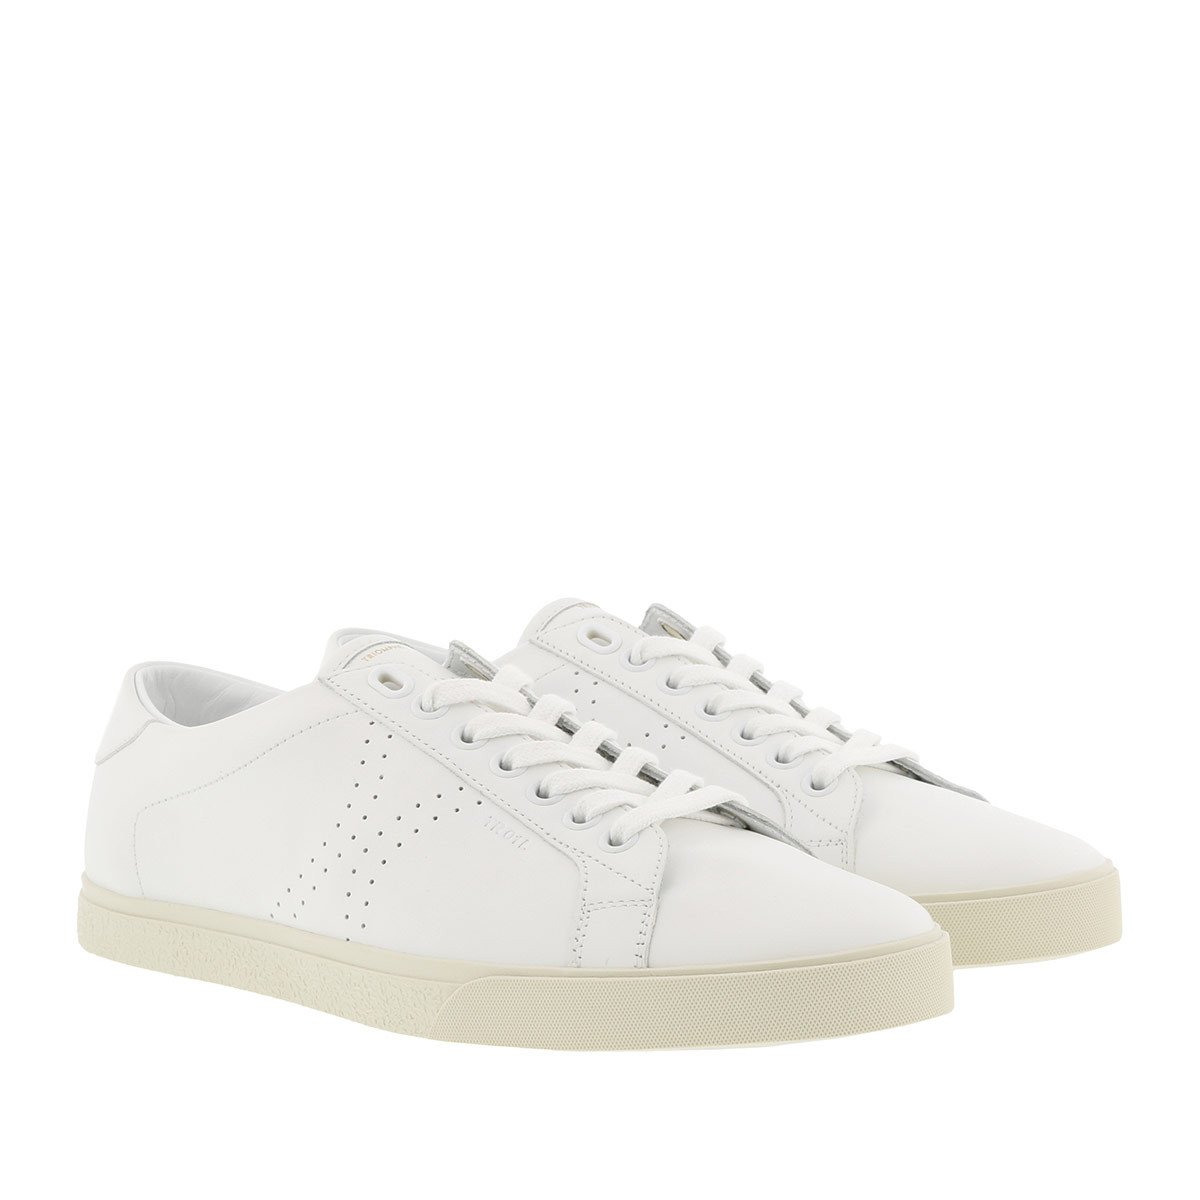 Celine Sneakers - Low Sneaker Leather White - in weiß - für Damen